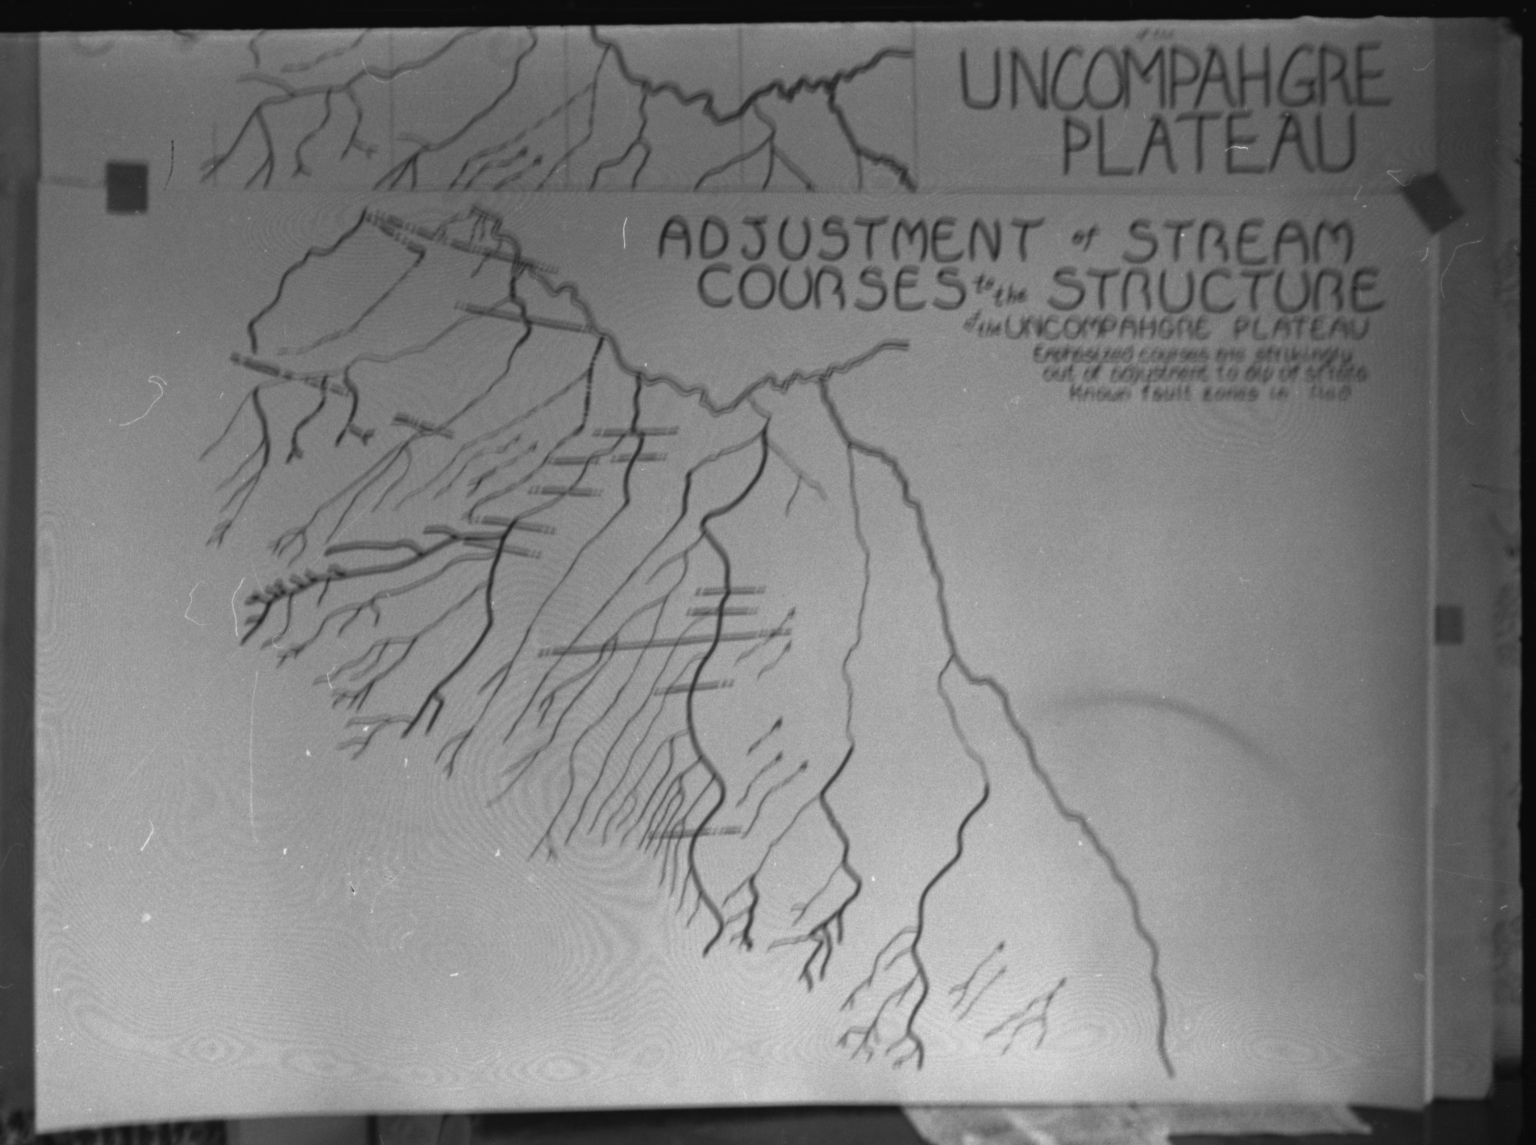 Uncompahgre Plateau water map